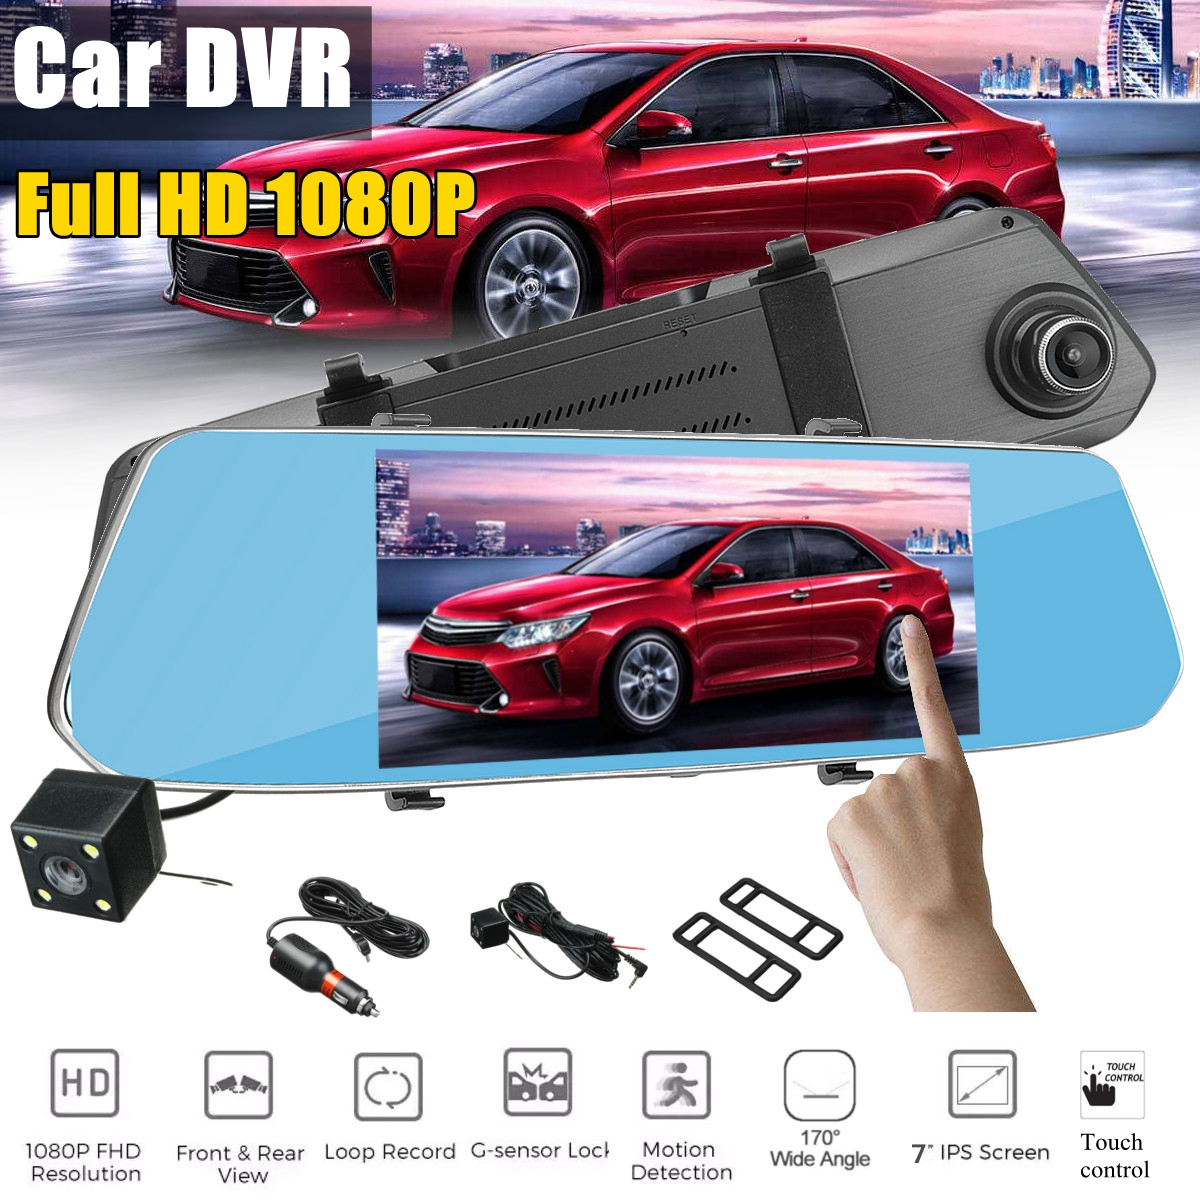 HD 1080P 2.5D Screen Touch Display Dual Lens 7 Inch Rearview Mirror Camera Recorder Car DVR Dash Cam G-sensor